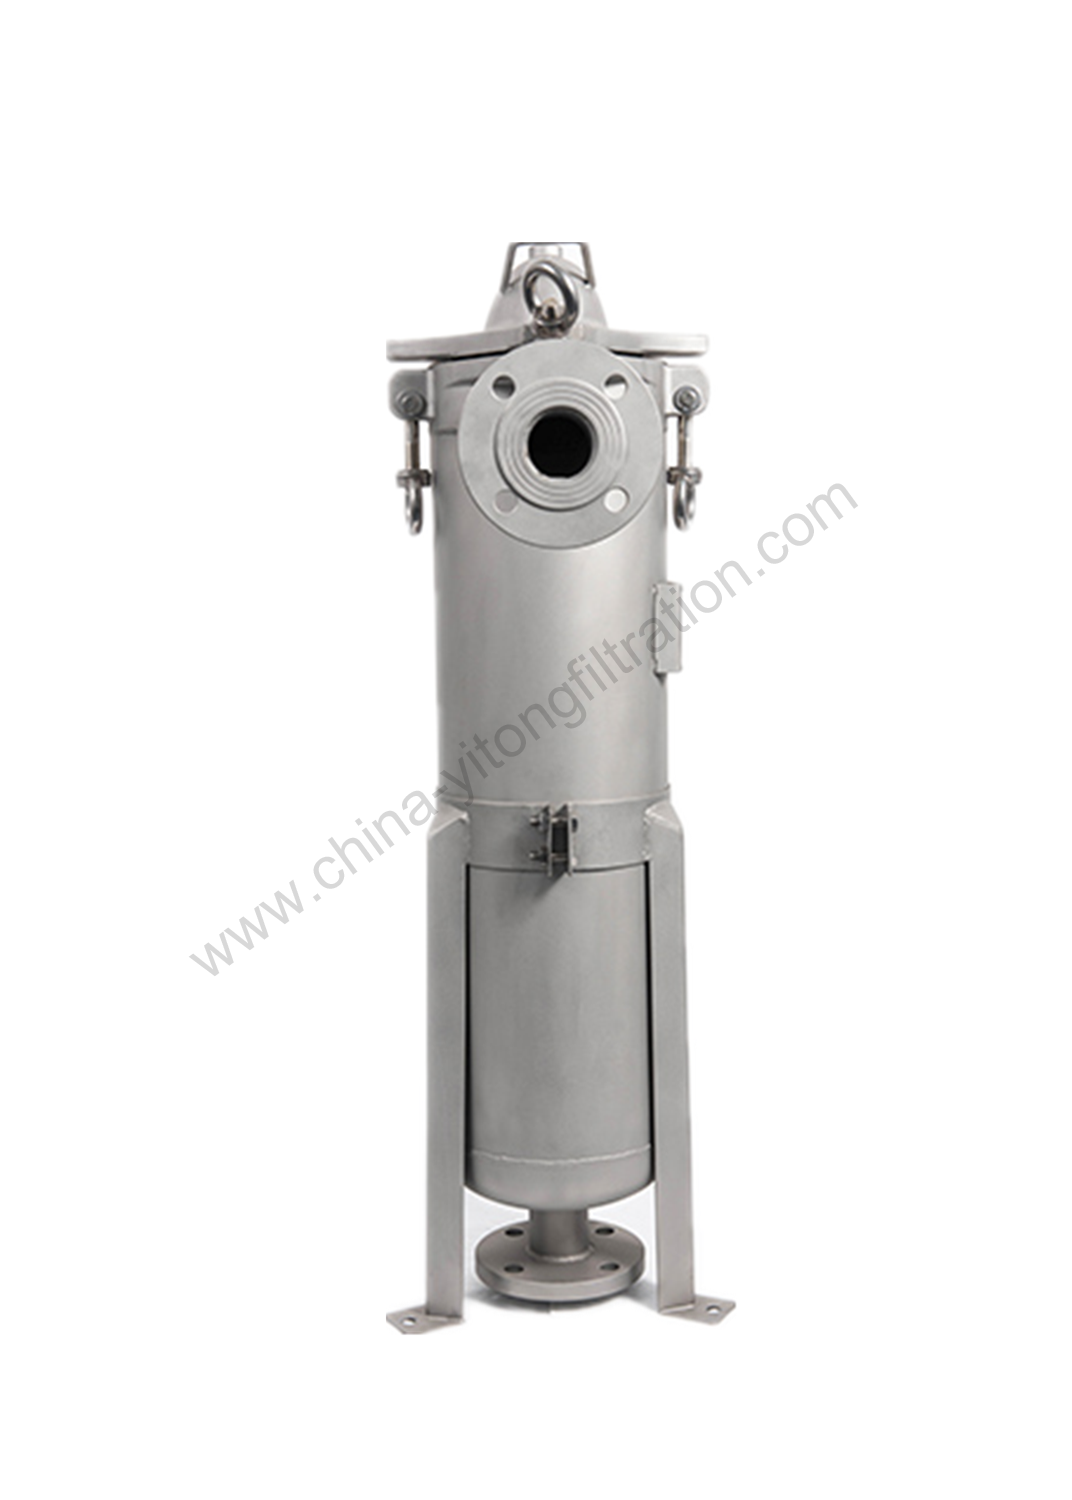 Top Entry Bag Filter Housing